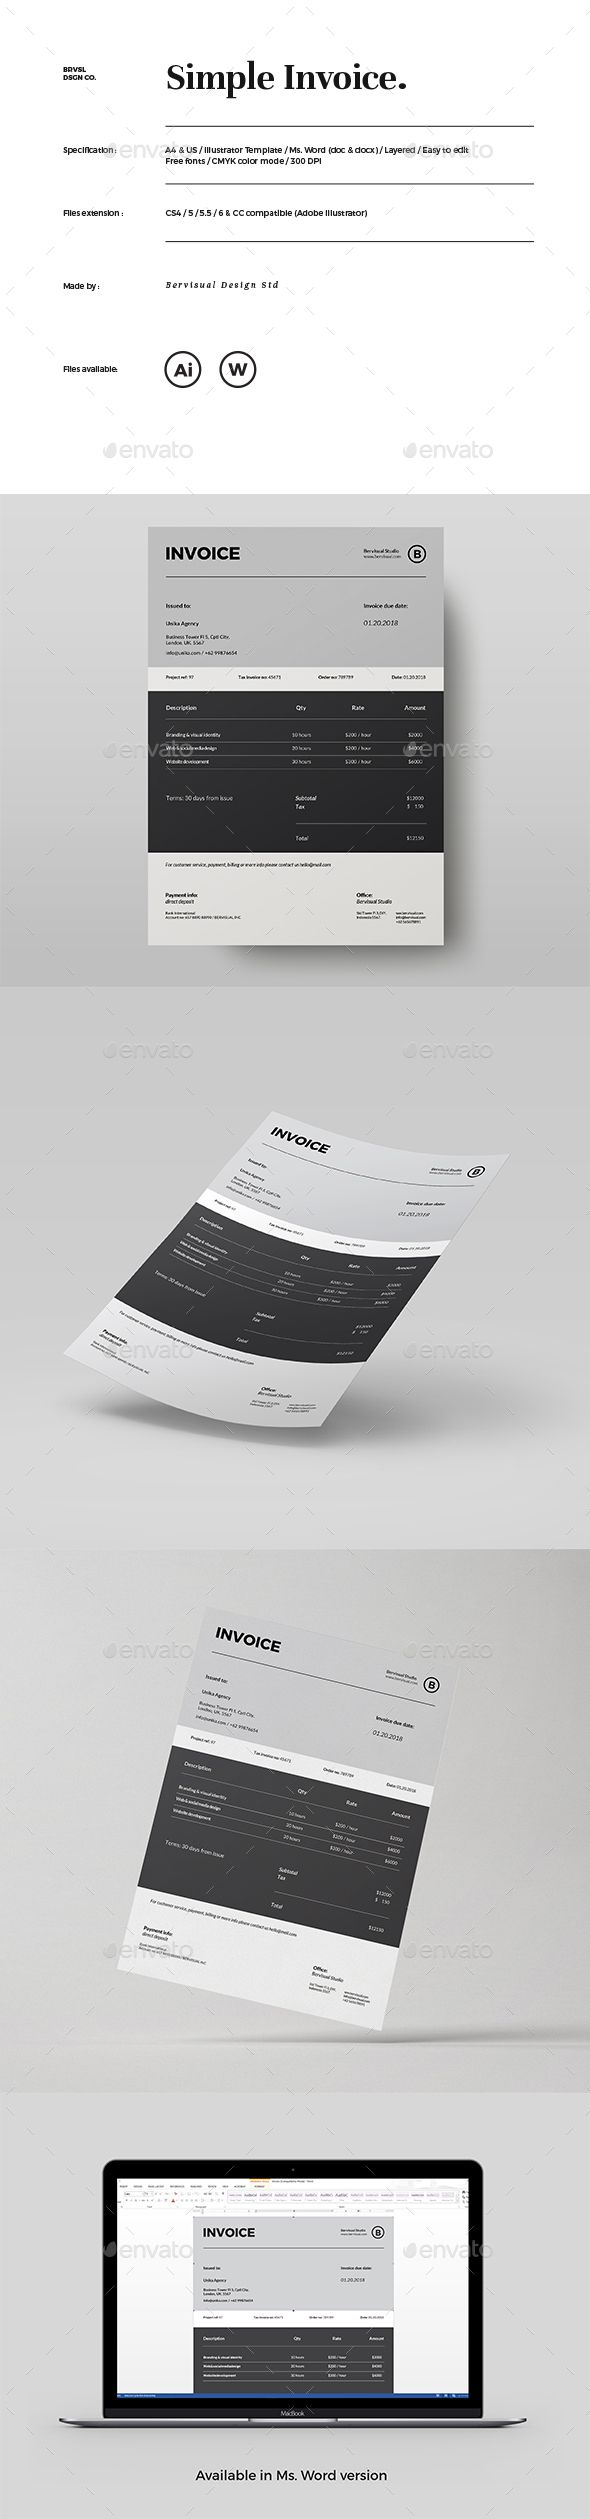 Simple Invoice Template Ai, Eps, Docx & Doc - A4 And Us Letter Size